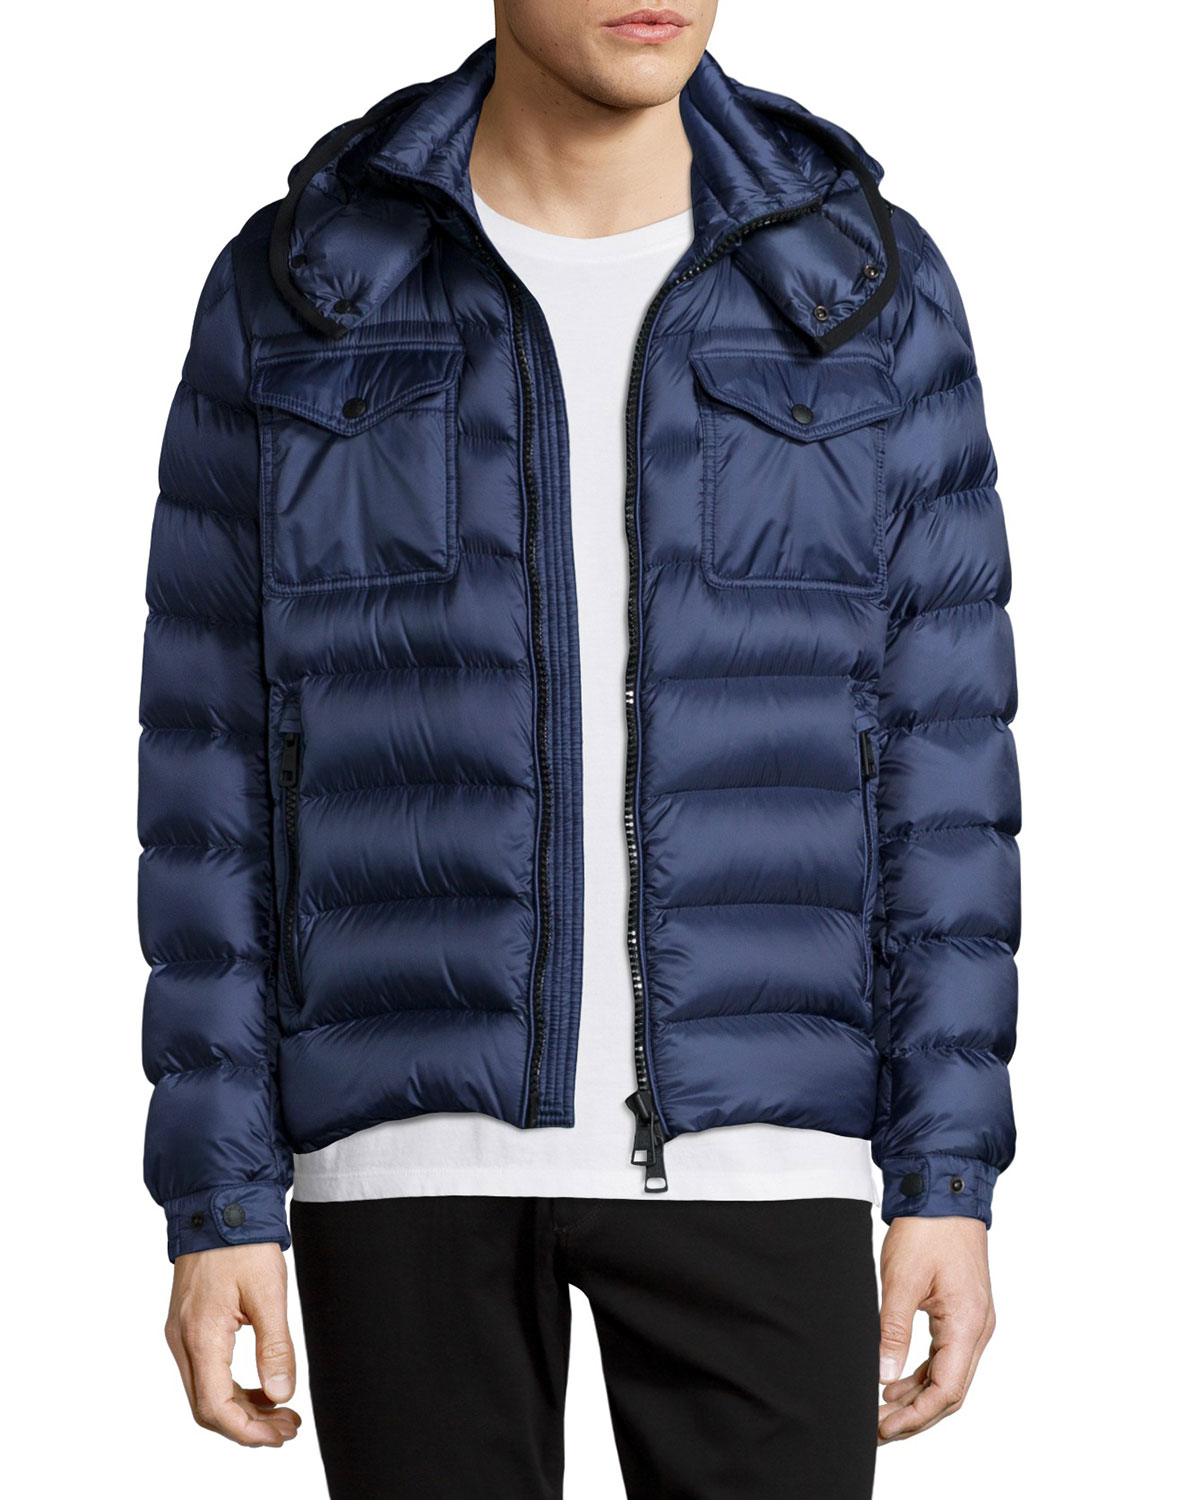 germany moncler luberon down jacket qld d7778 99952 rh jadamsrealtor com